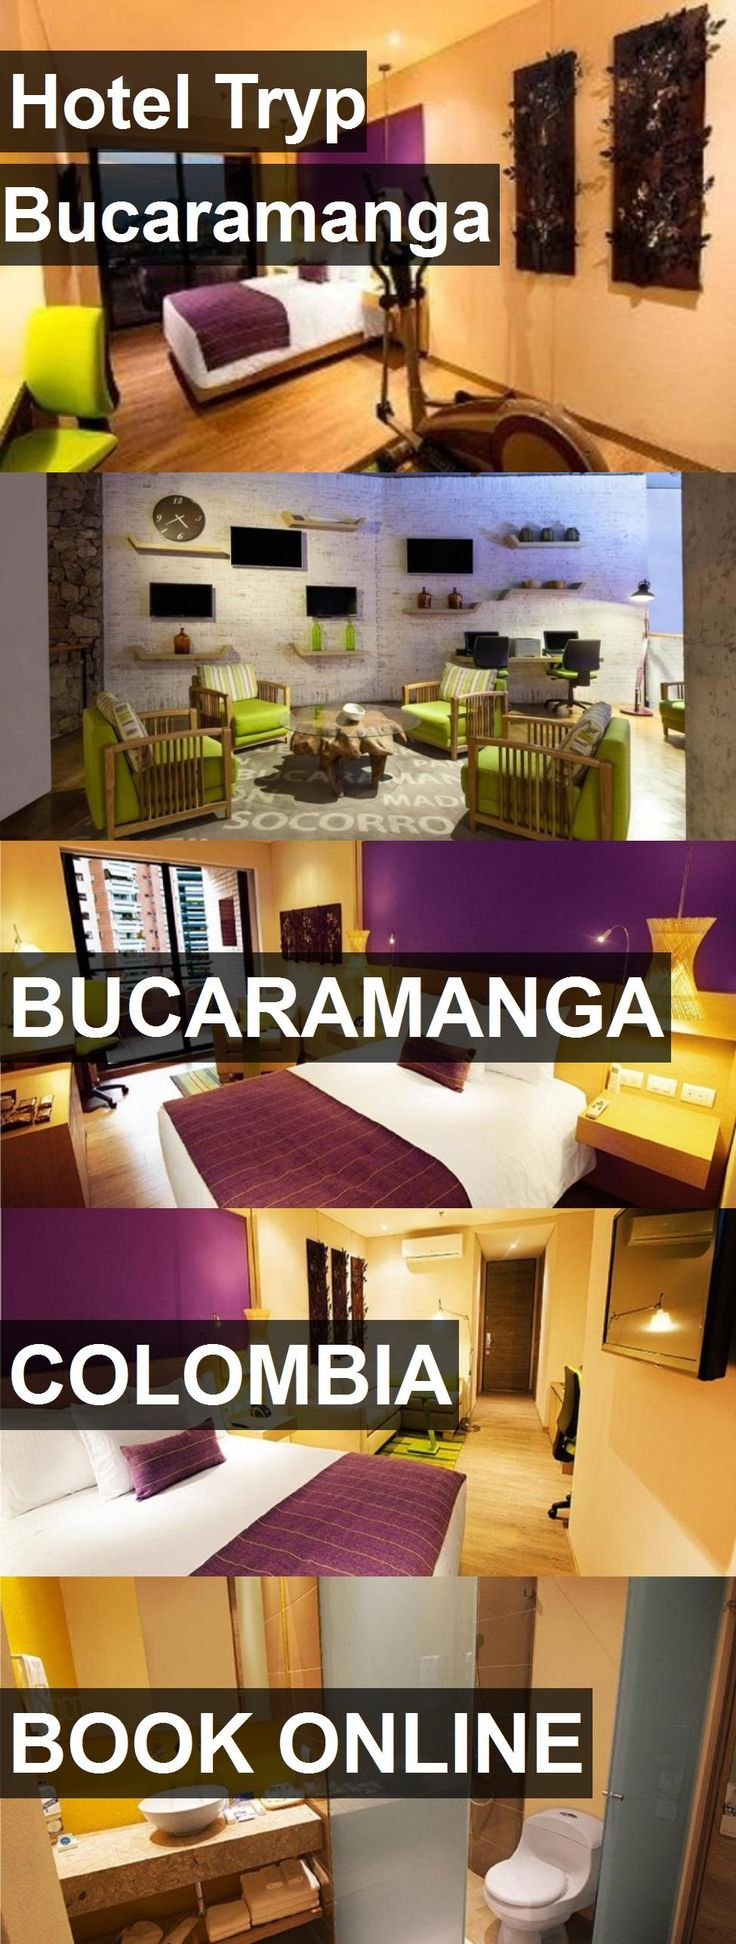 Hotel Tryp Bucaramanga in Bucaramanga, Colombia. For more information, photos, reviews and best prices please follow the link. #Colombia #Bucaramanga #travel #vacation #hotel